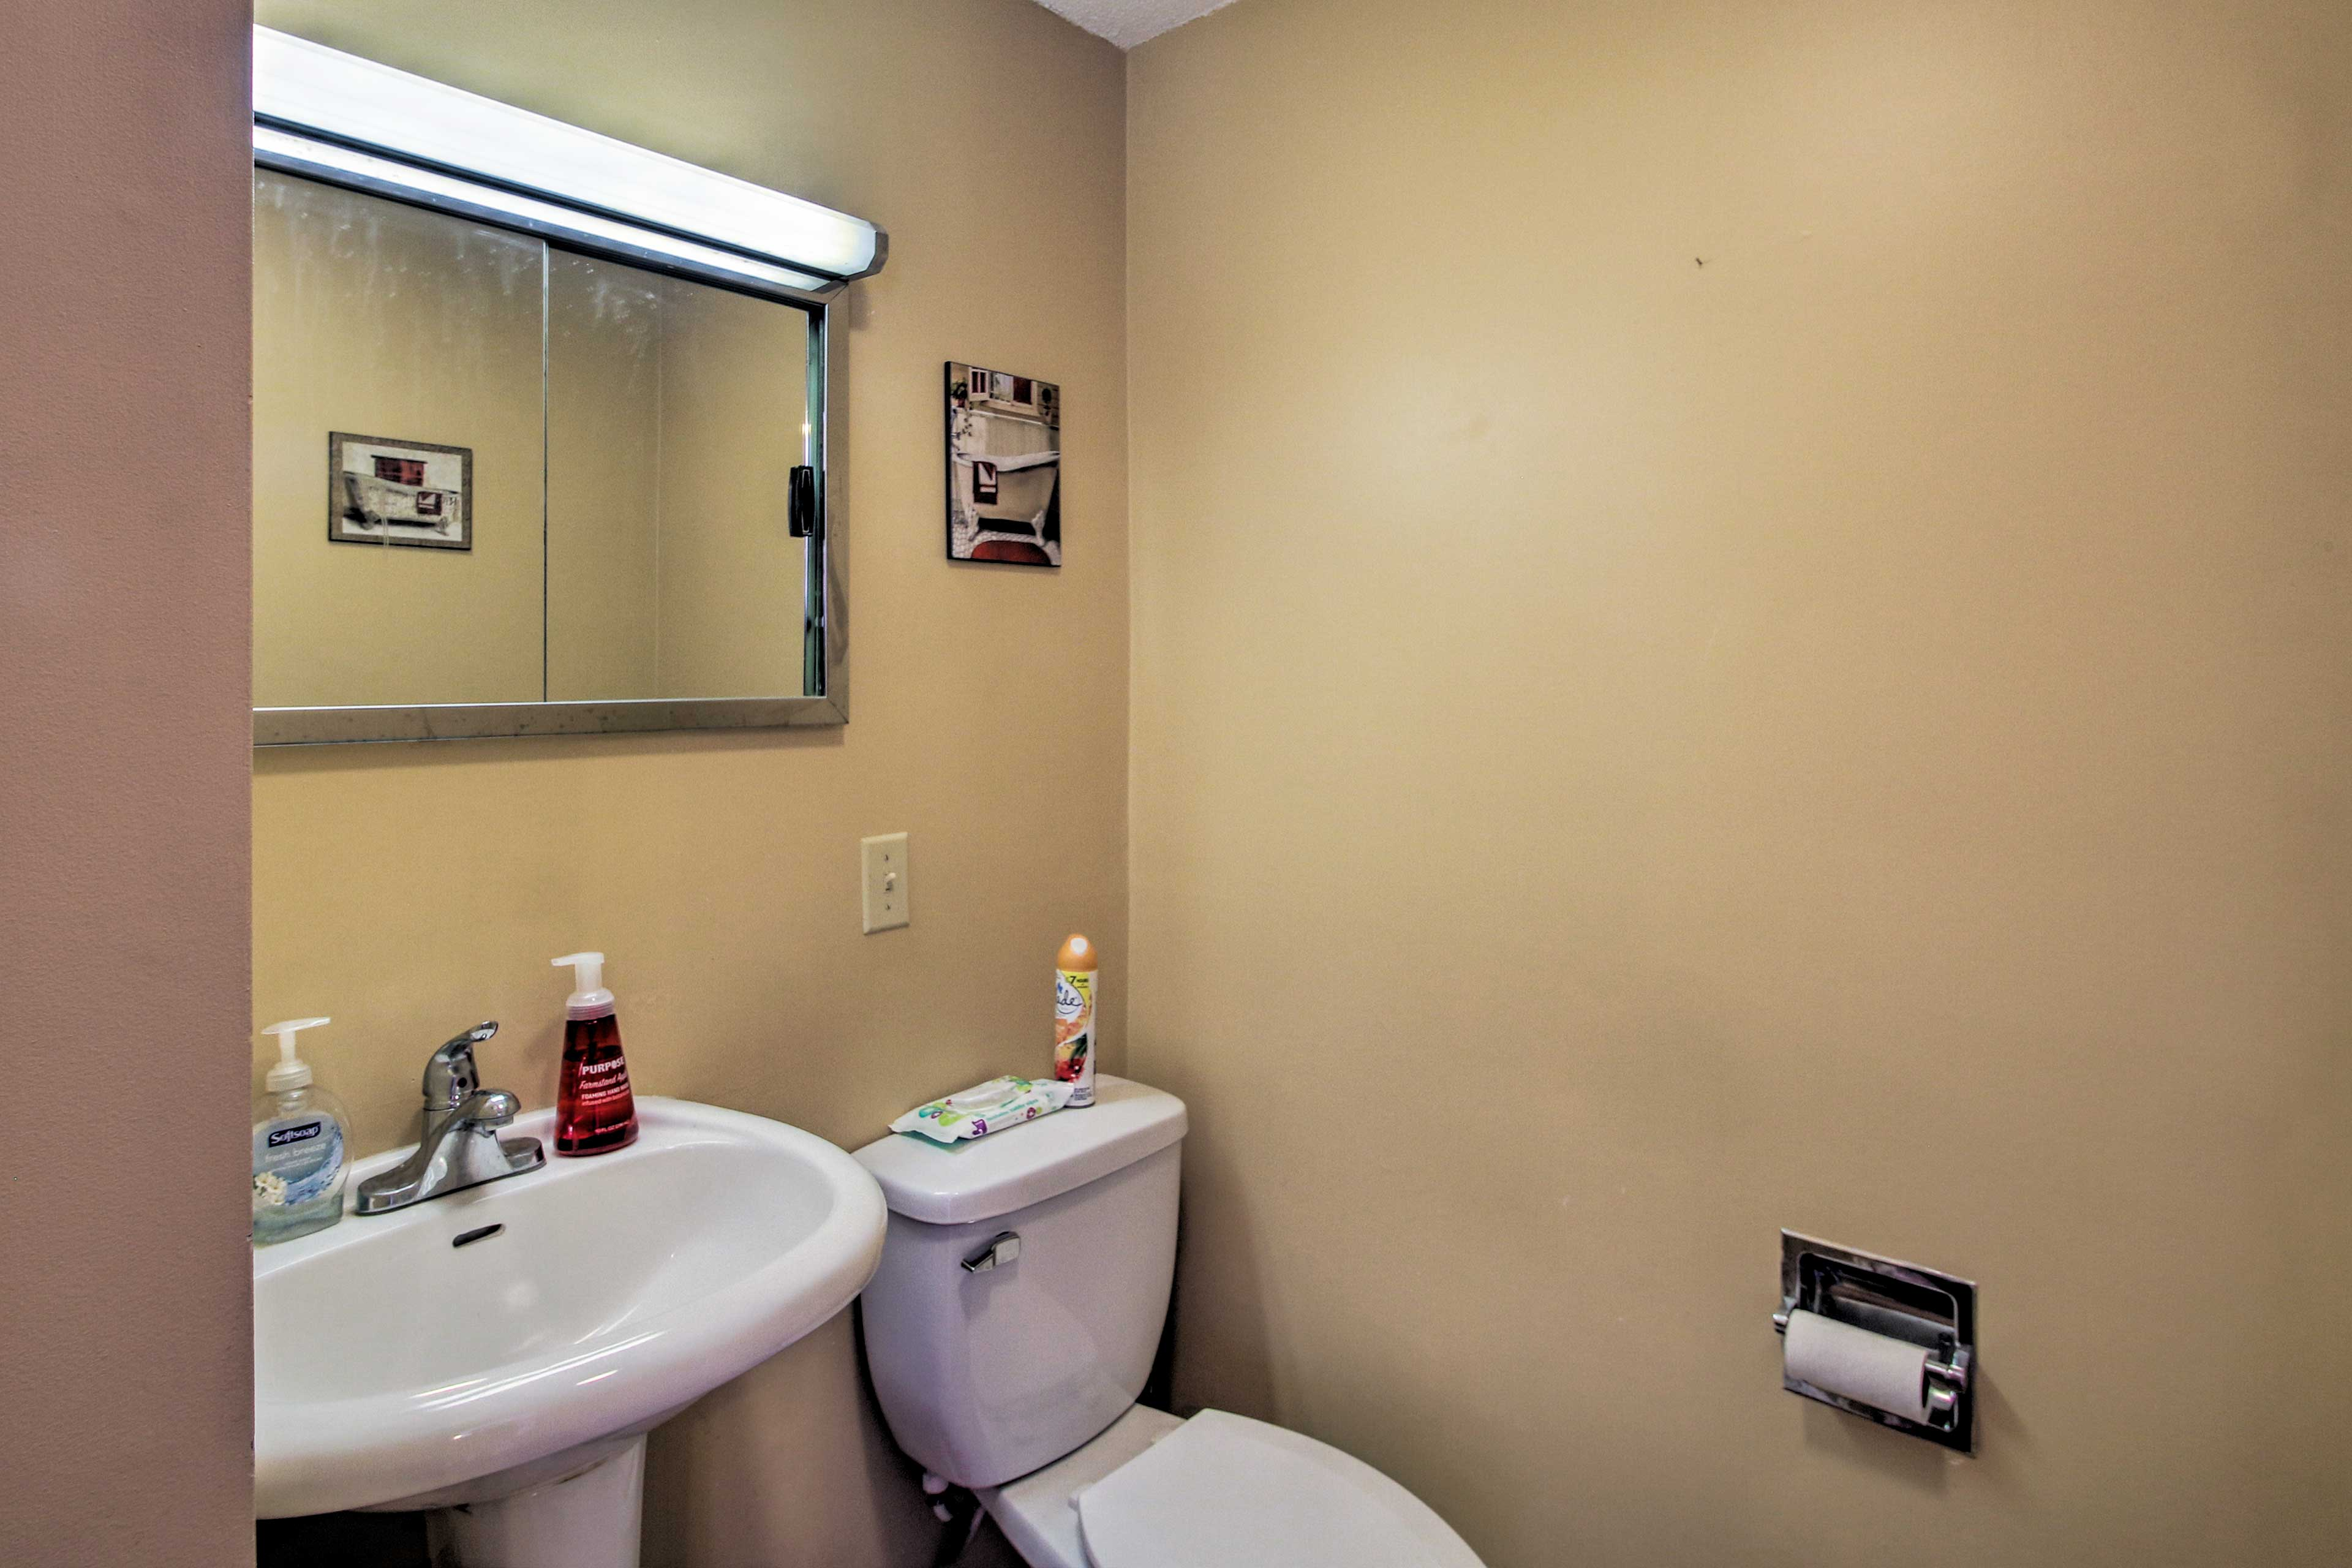 There are 2 full bathrooms and a half bath in this home.